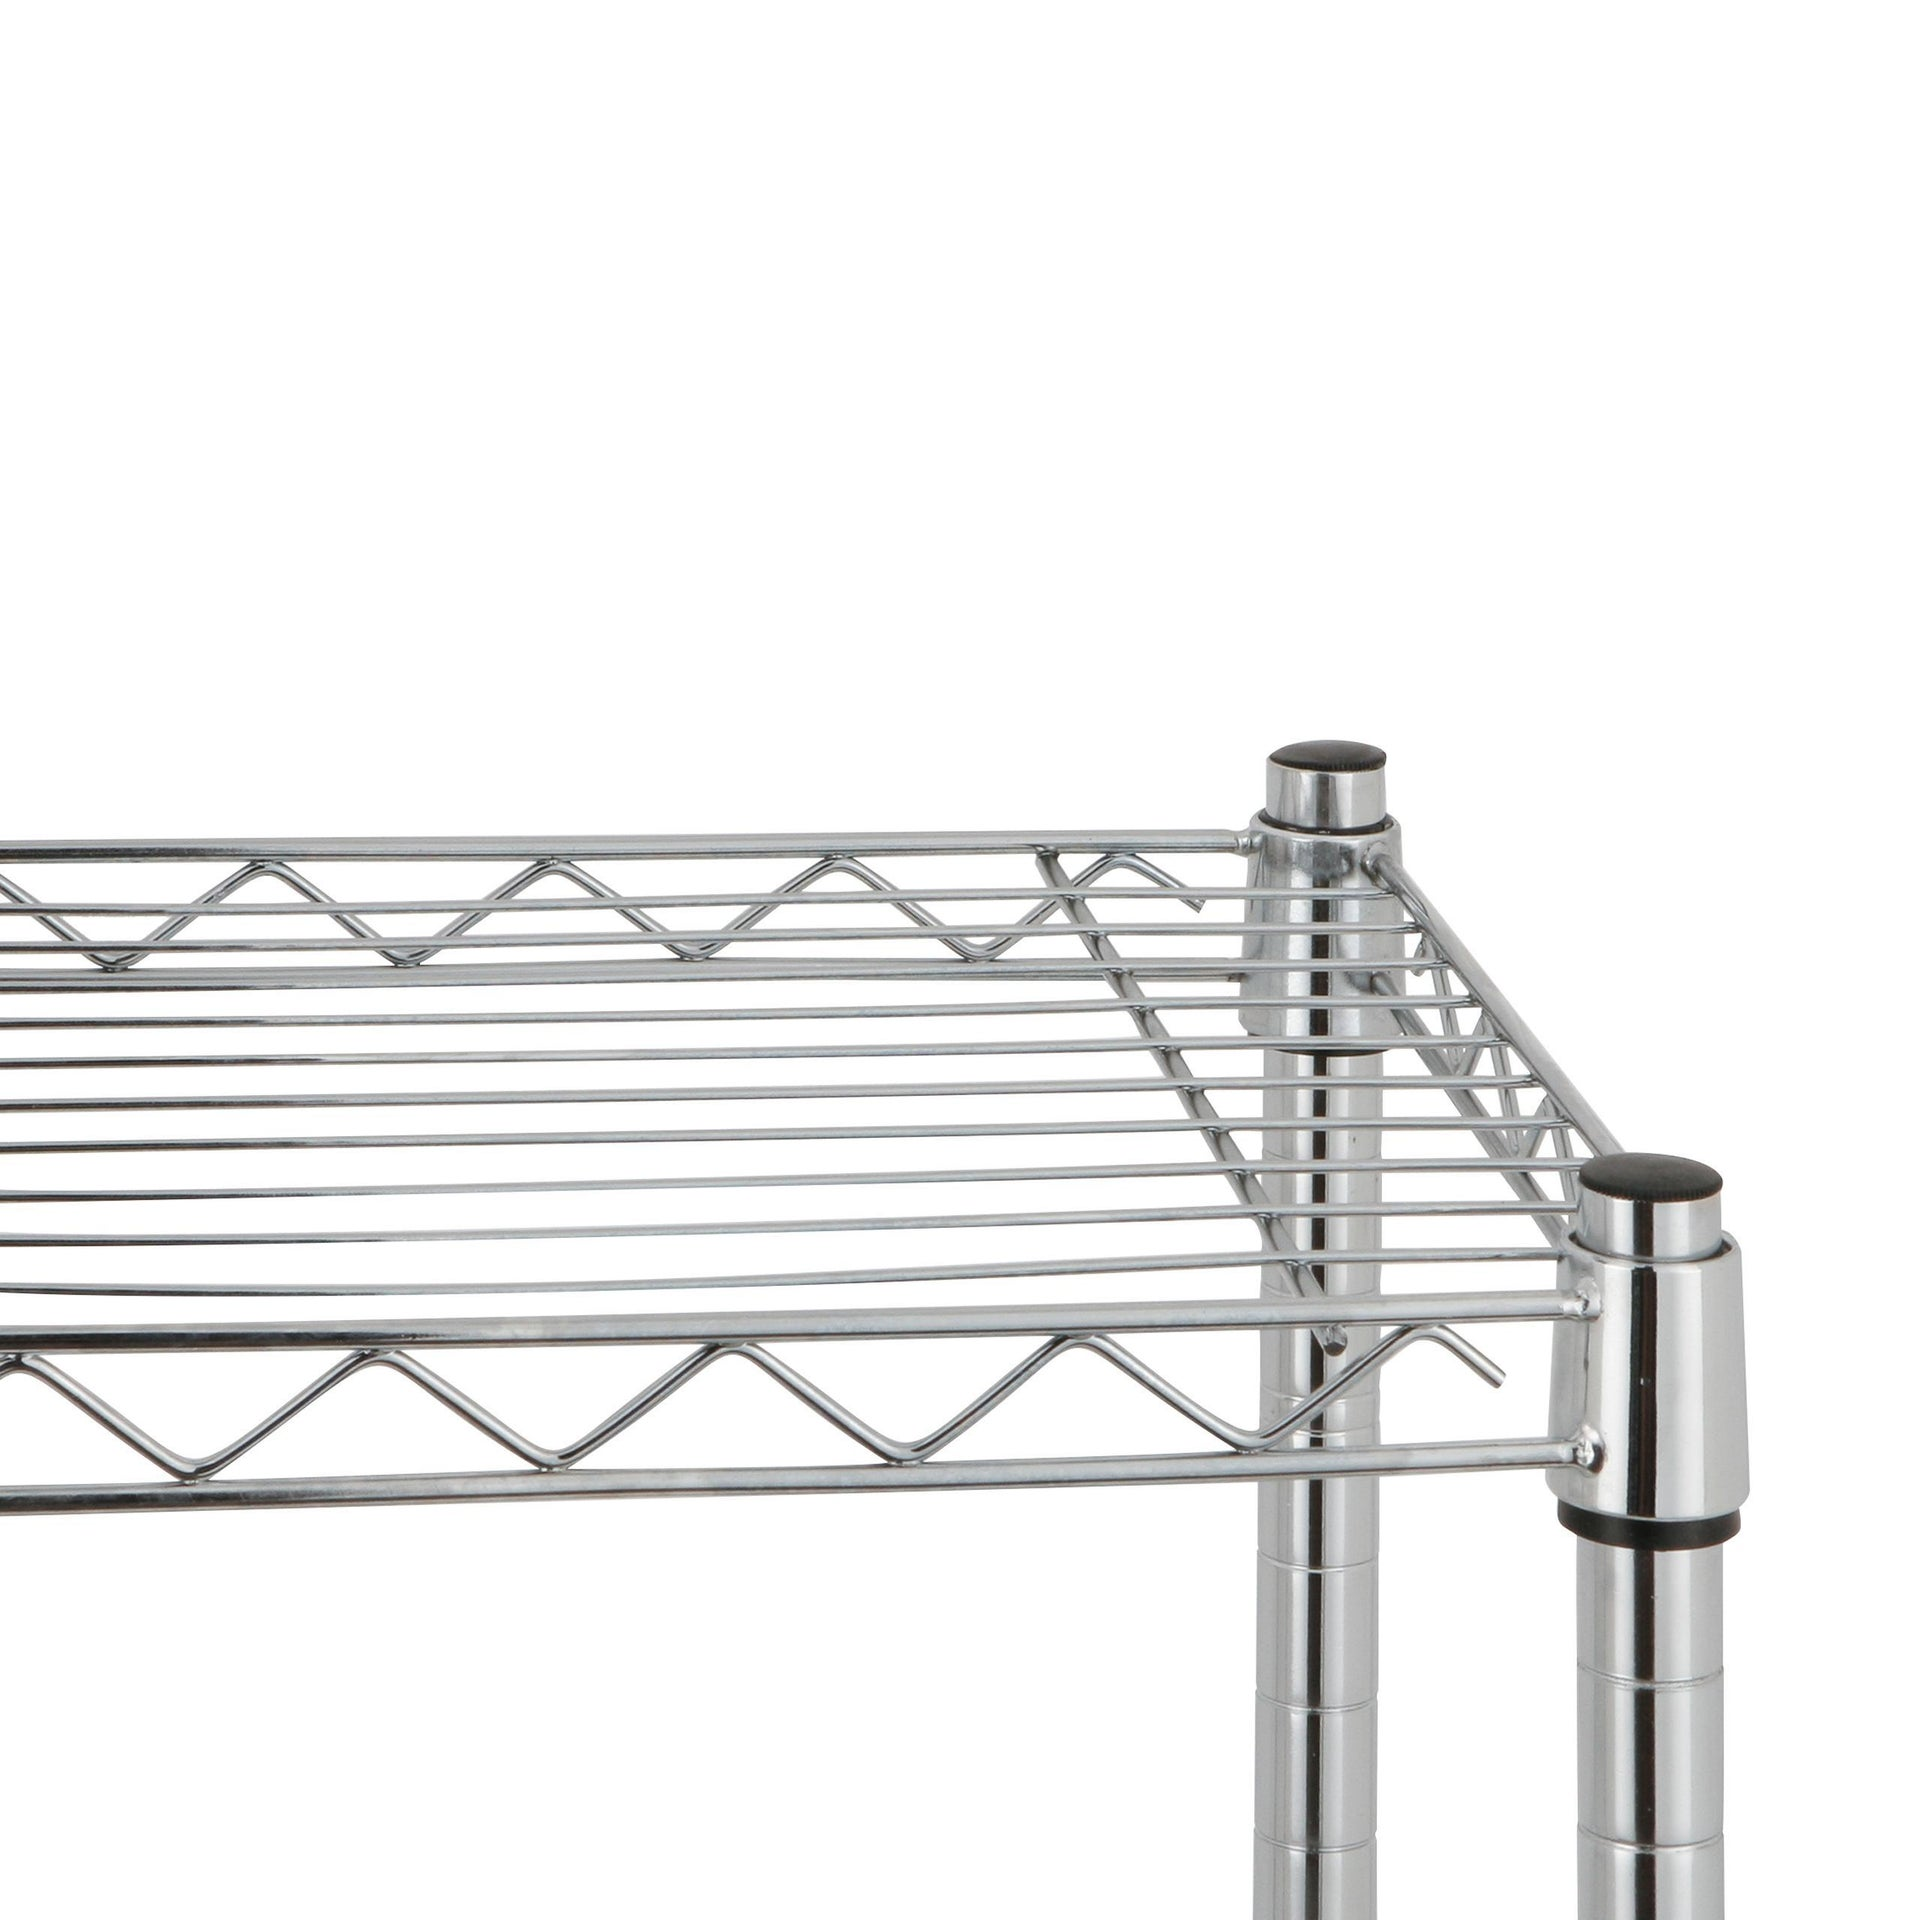 Scaffale in metallo Spaceo Chrome Style+ L 90 x P 35 x H 178 cm - 3